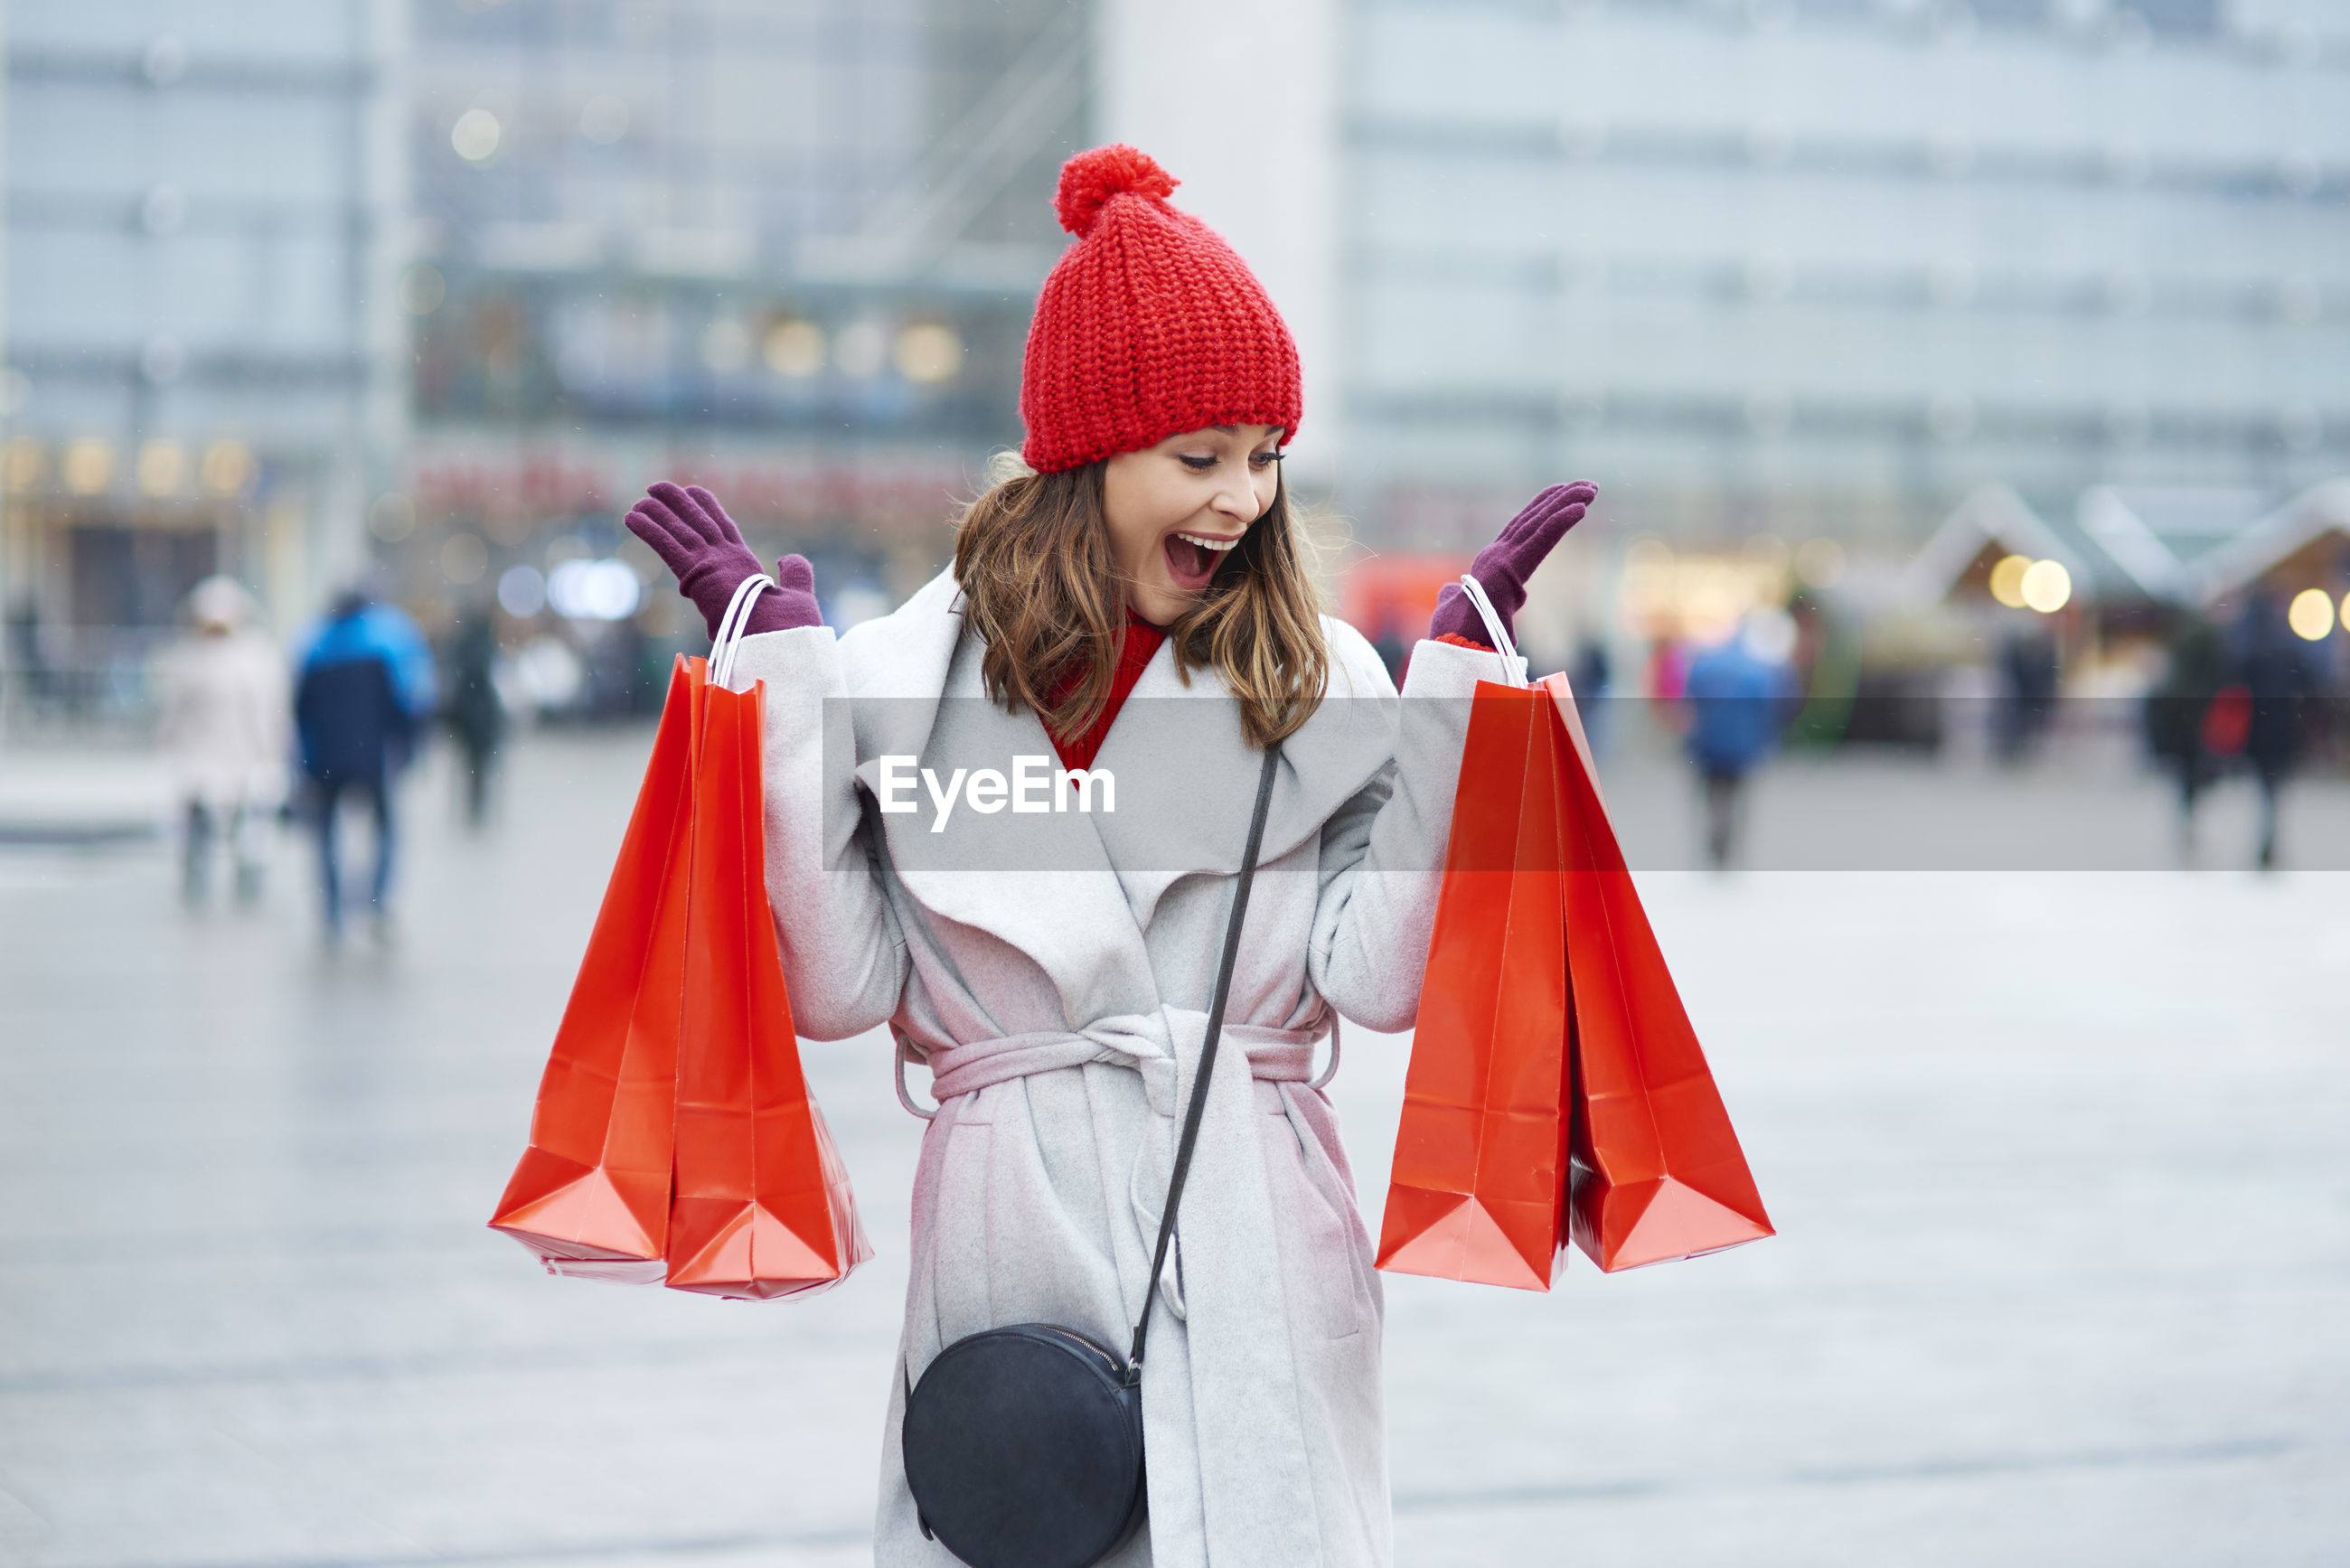 Happy woman holding shopping bags while standing in city during winter